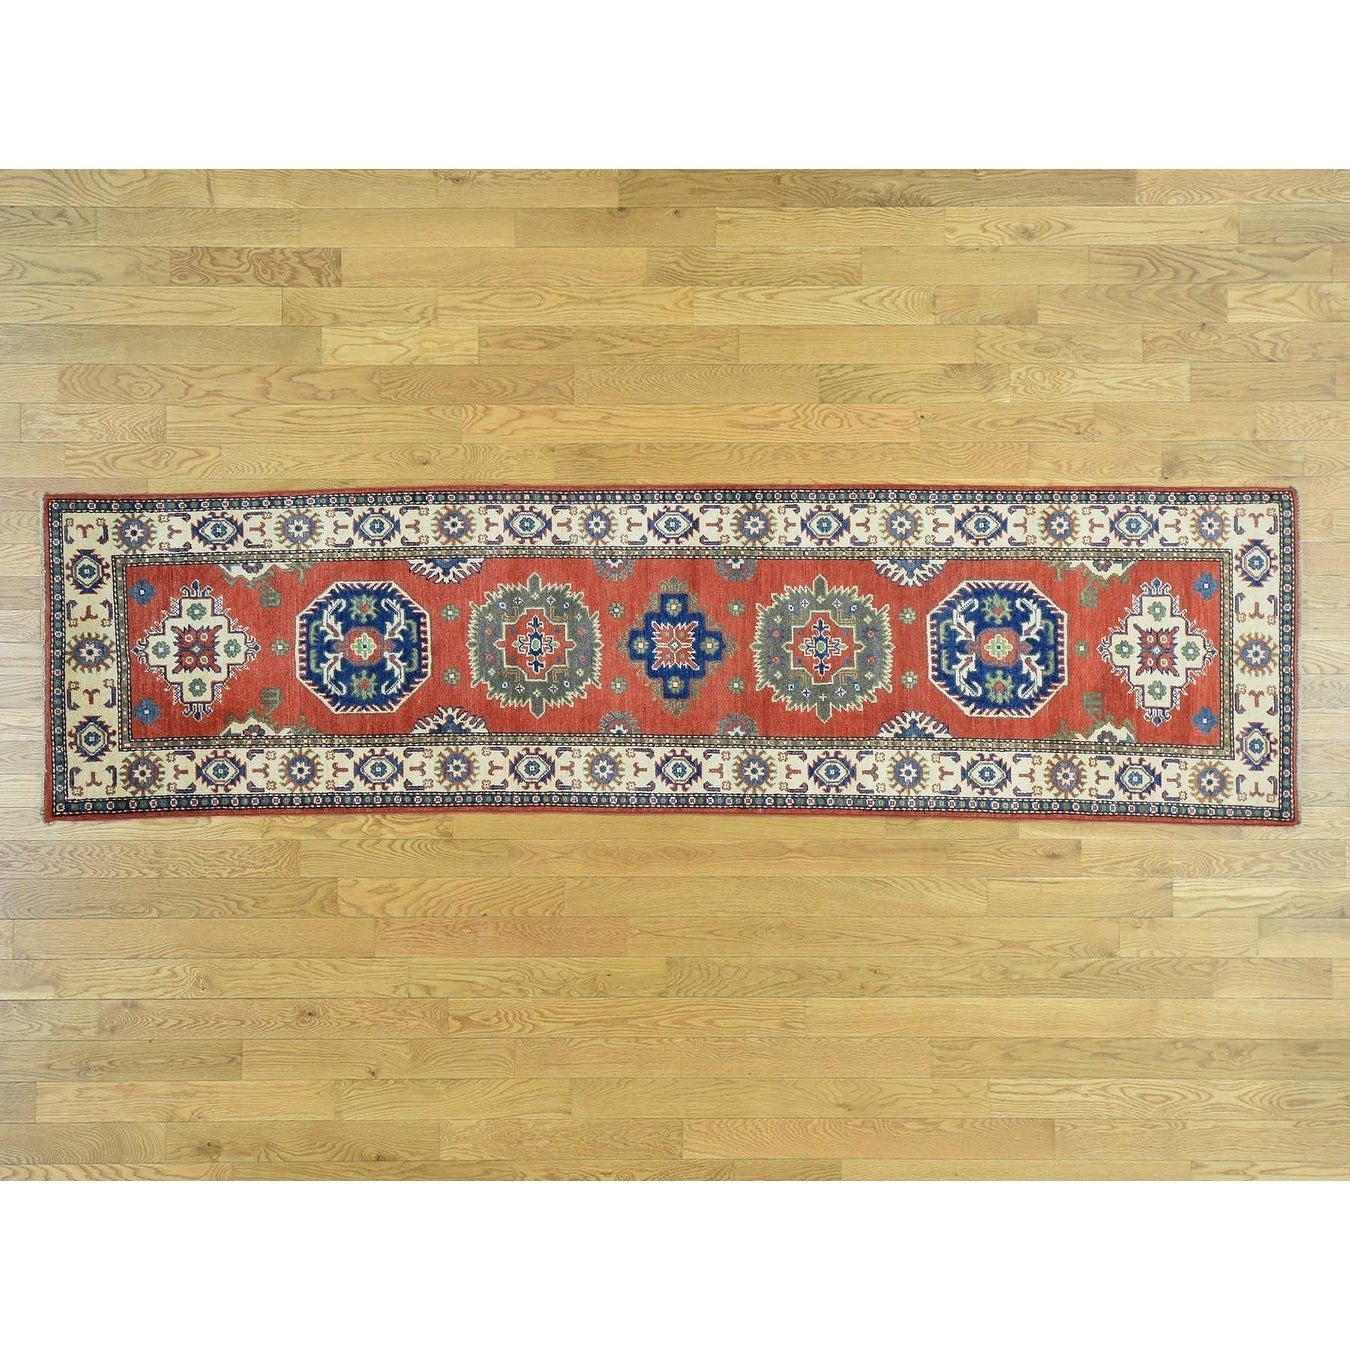 Hand Knotted Red Kazak with Wool Oriental Rug - 28 x 105